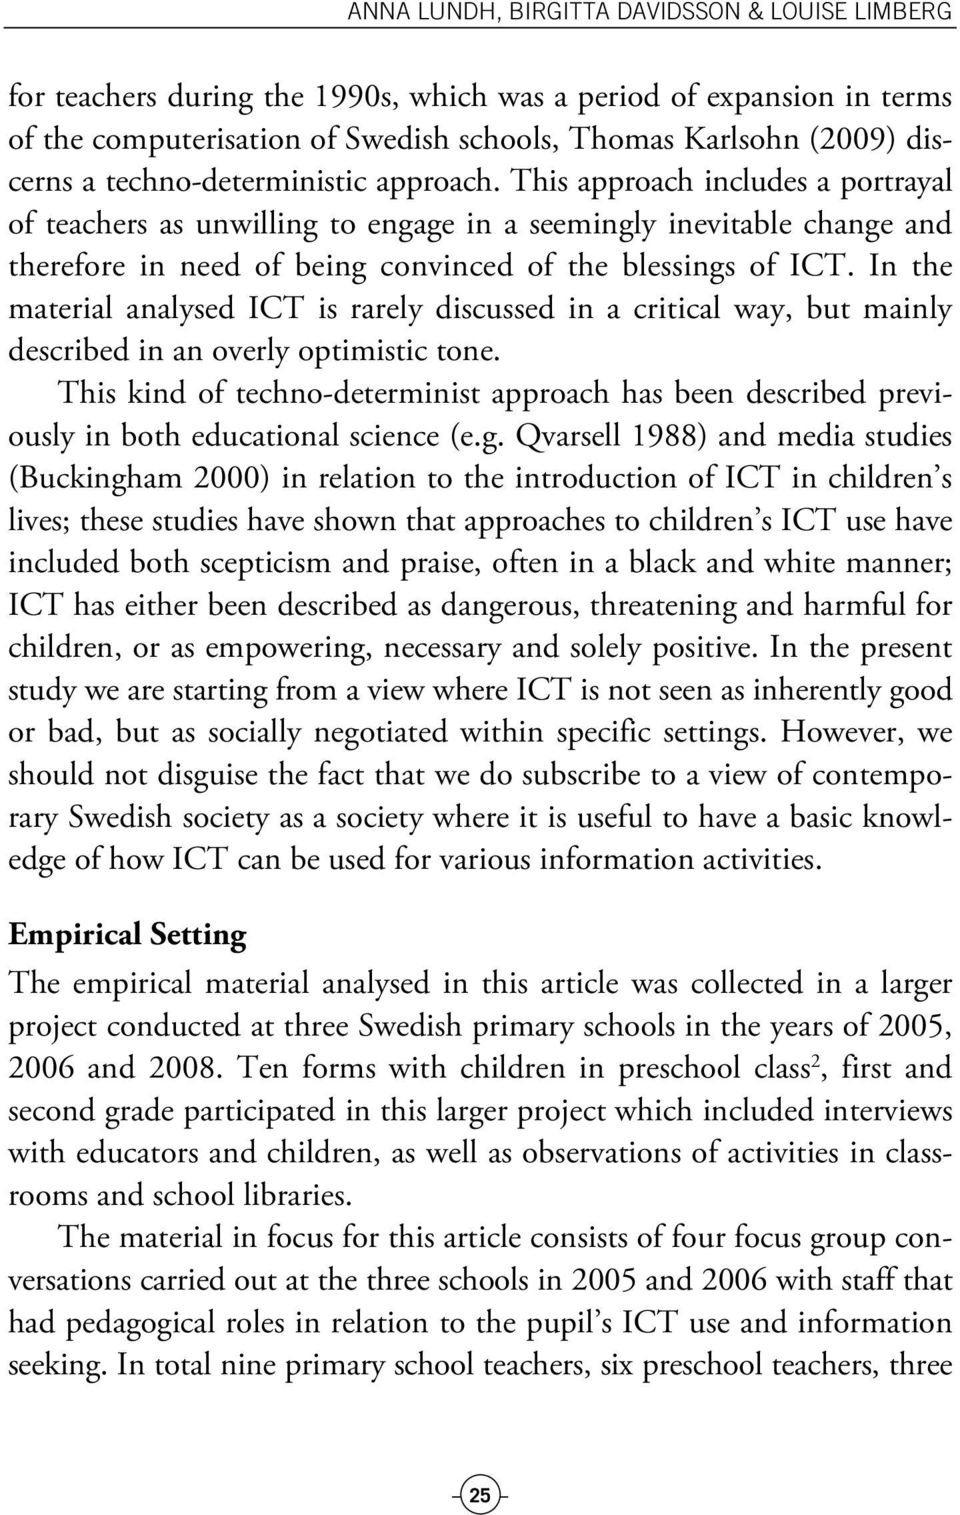 In the material analysed ICT is rarely discussed in a critical way, but mainly described in an overly optimistic tone.